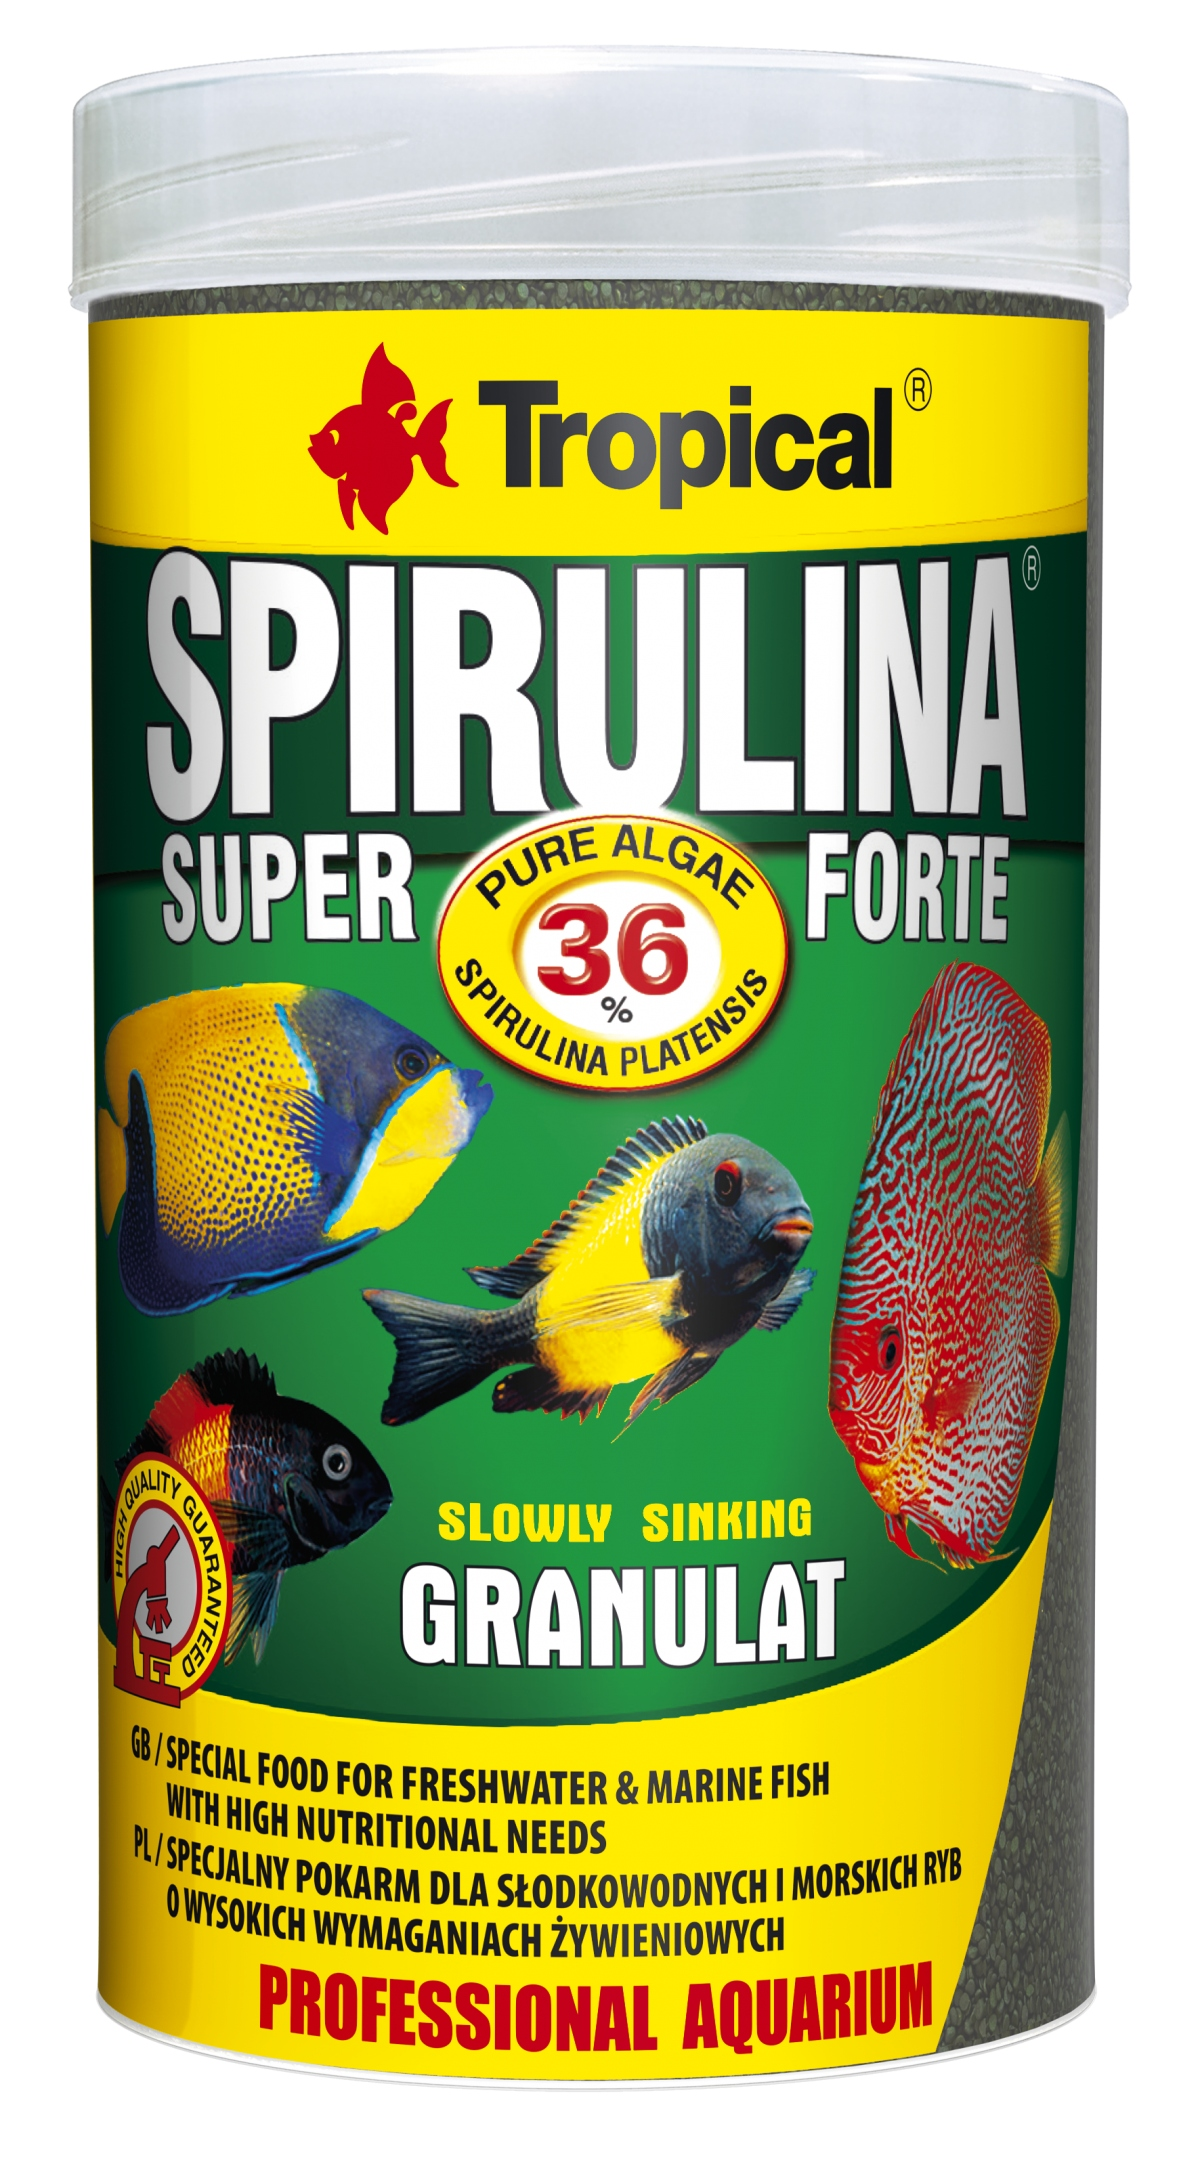 Tropical Super Spirulina Forte Granulát 36% - 250ml /150g